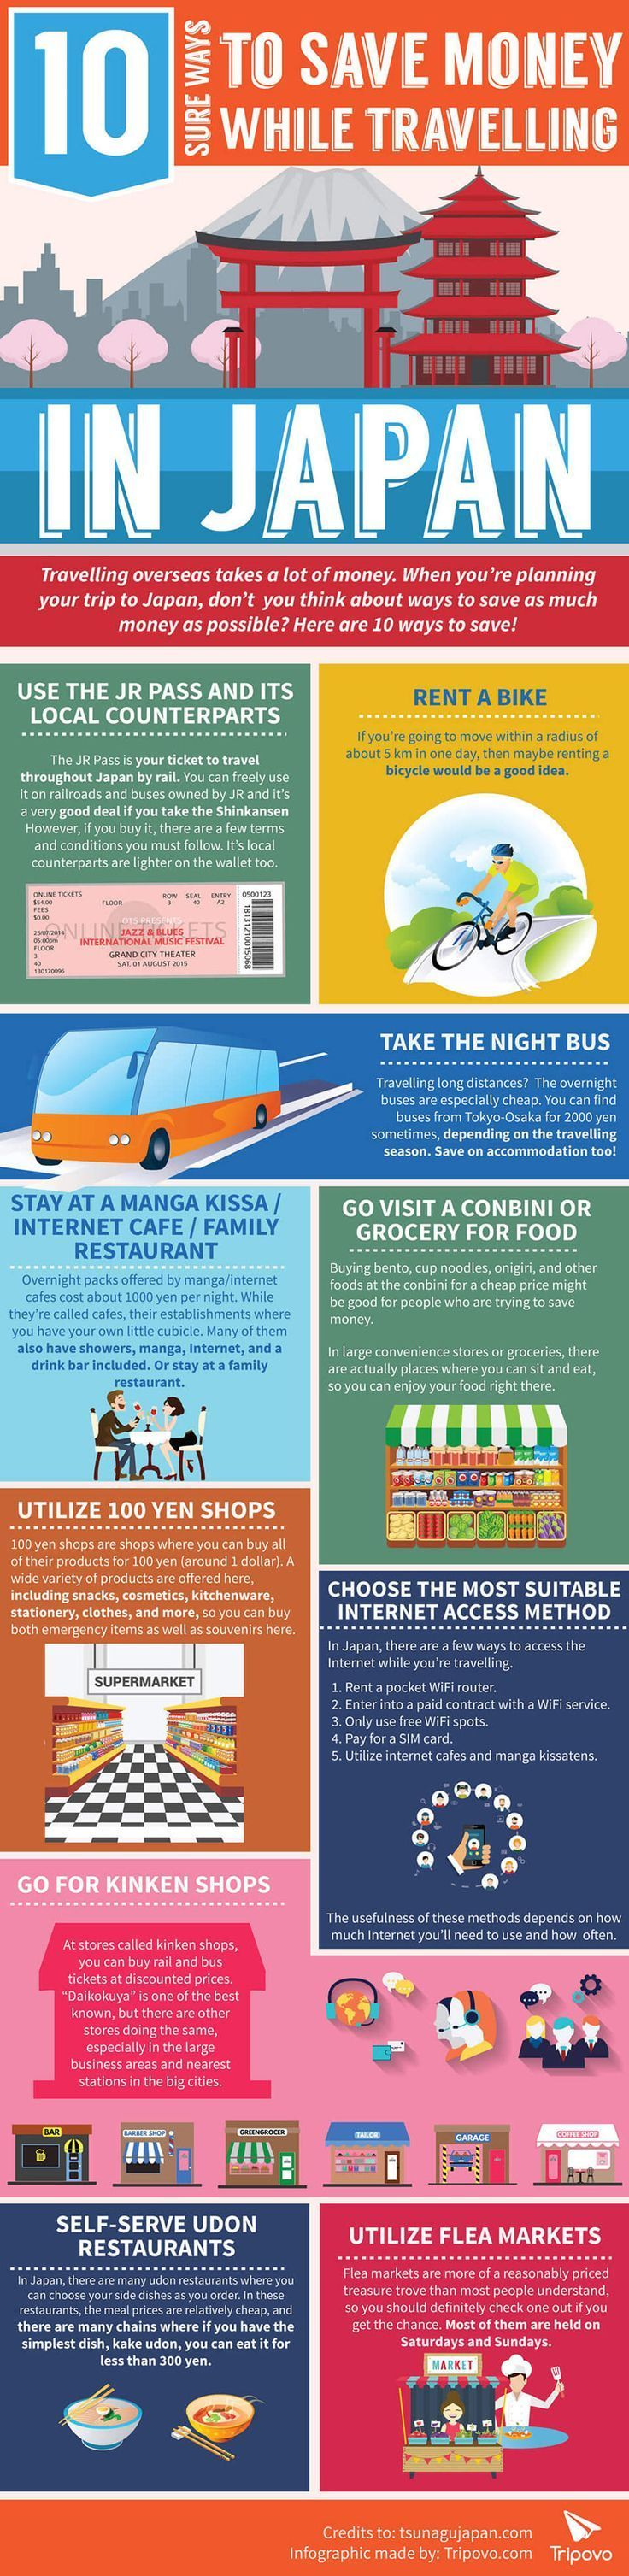 , 10 Ways to Save Money While Traveling in Japan  ,  #infographic #infographictravel #Japan #mo…, My Travels Blog 2020, My Travels Blog 2020